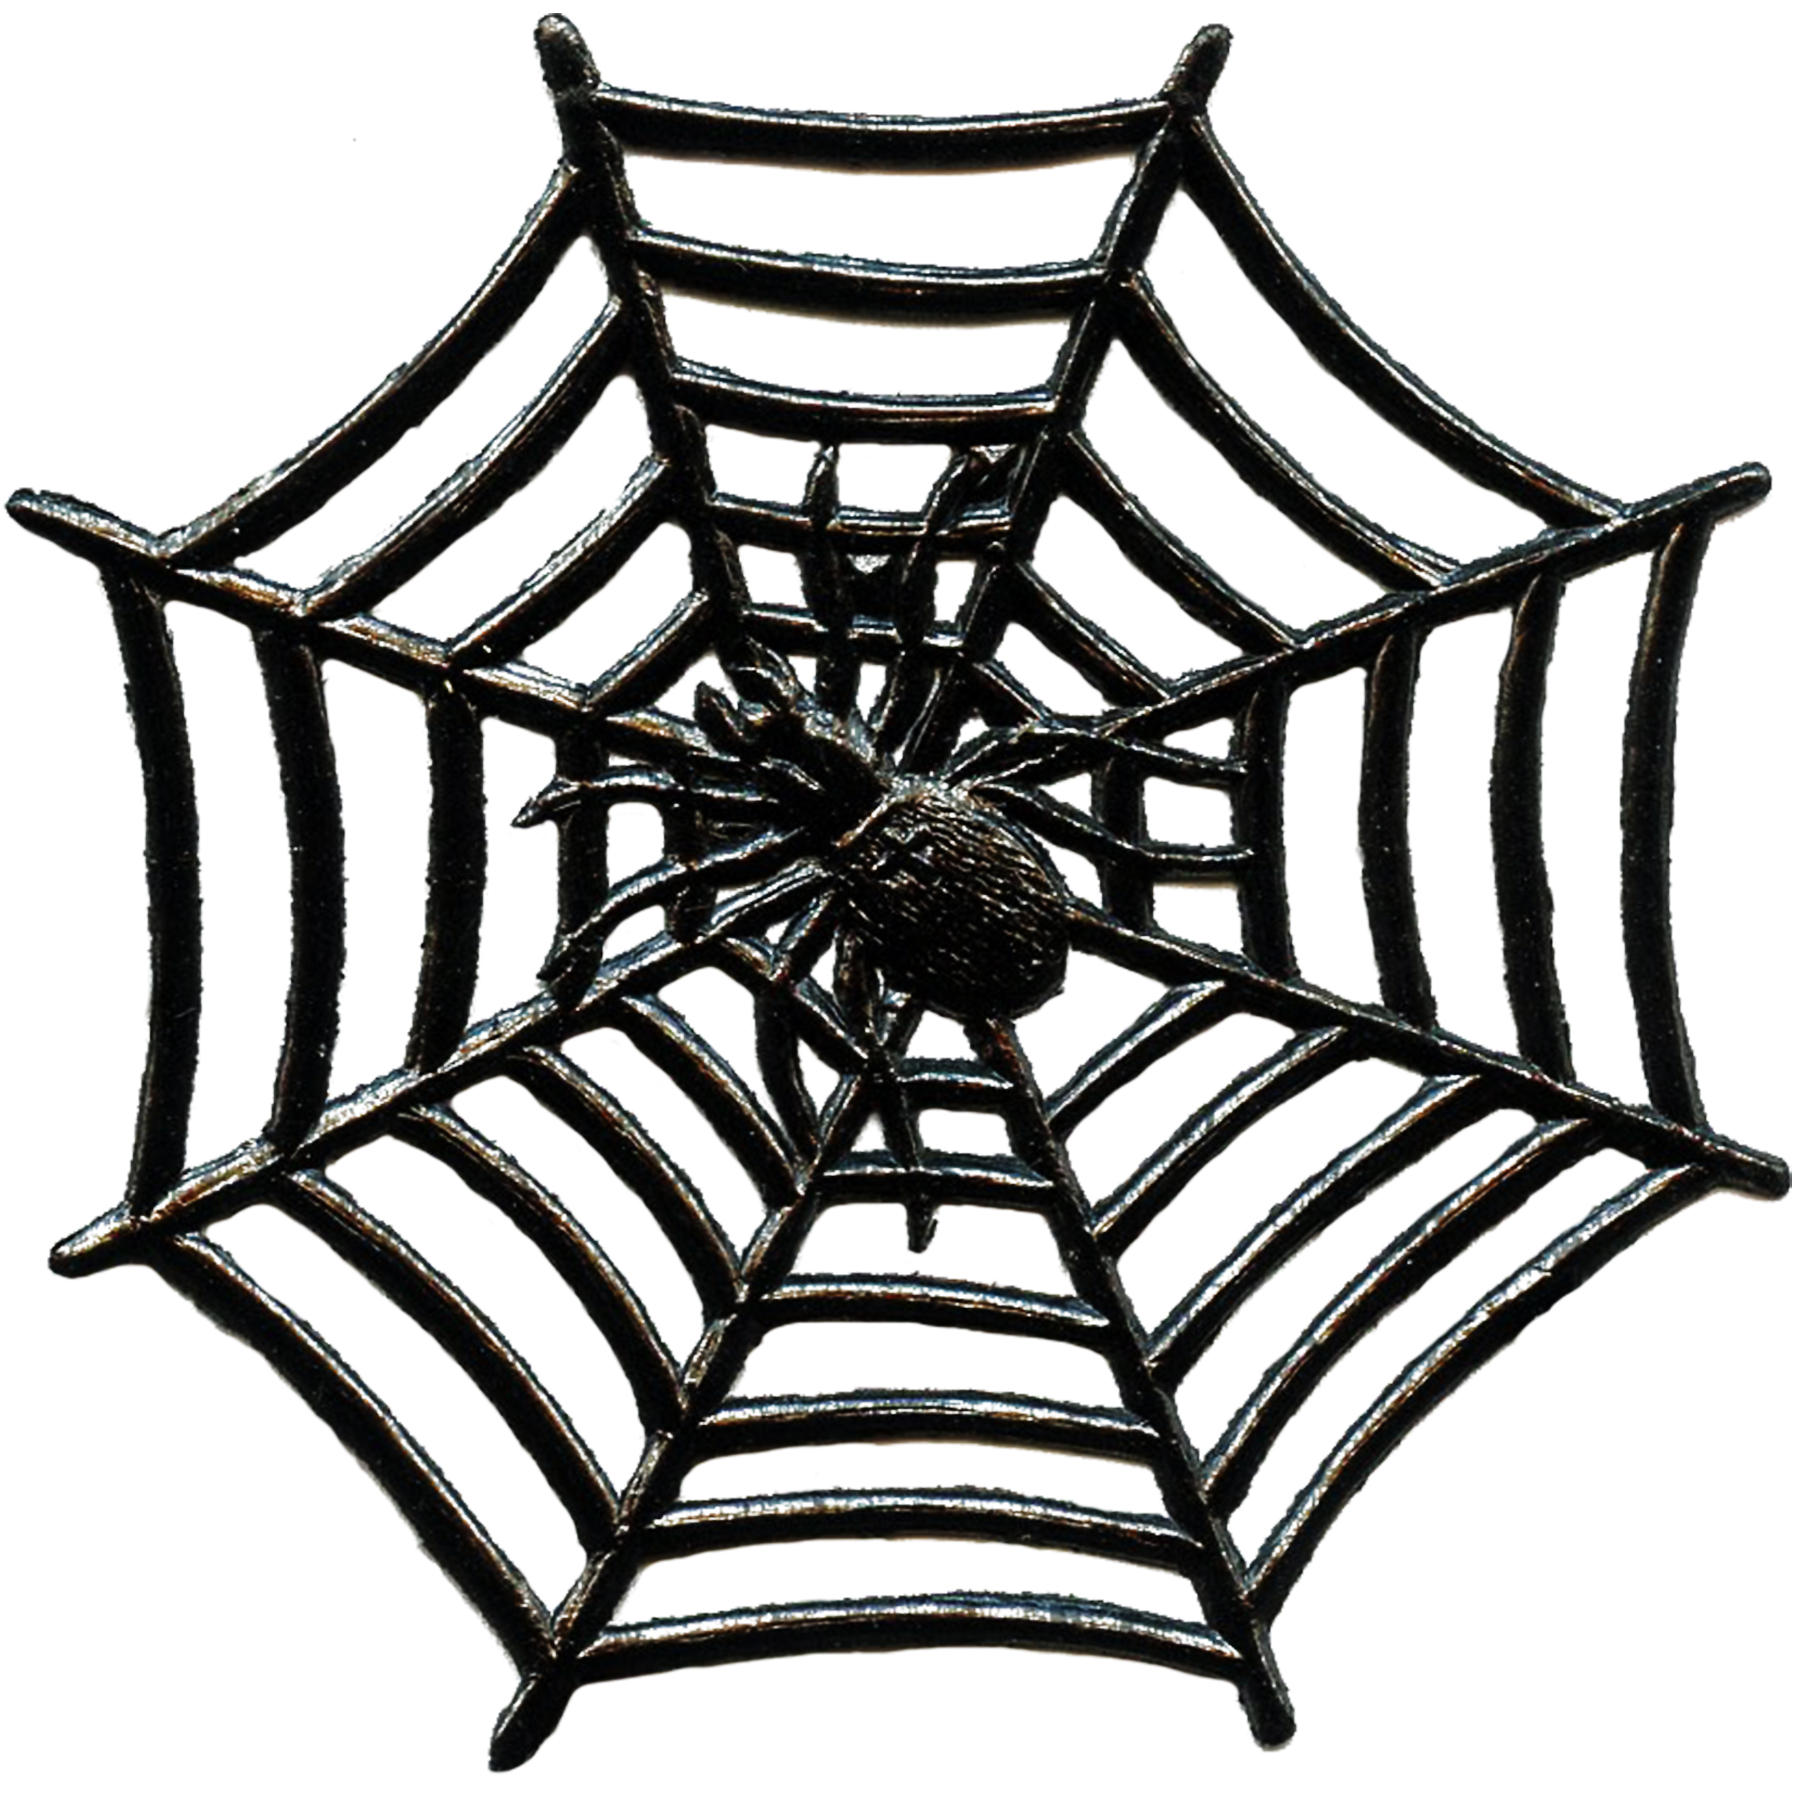 1800x1793 Vintage Halloween Spider Image With Web!